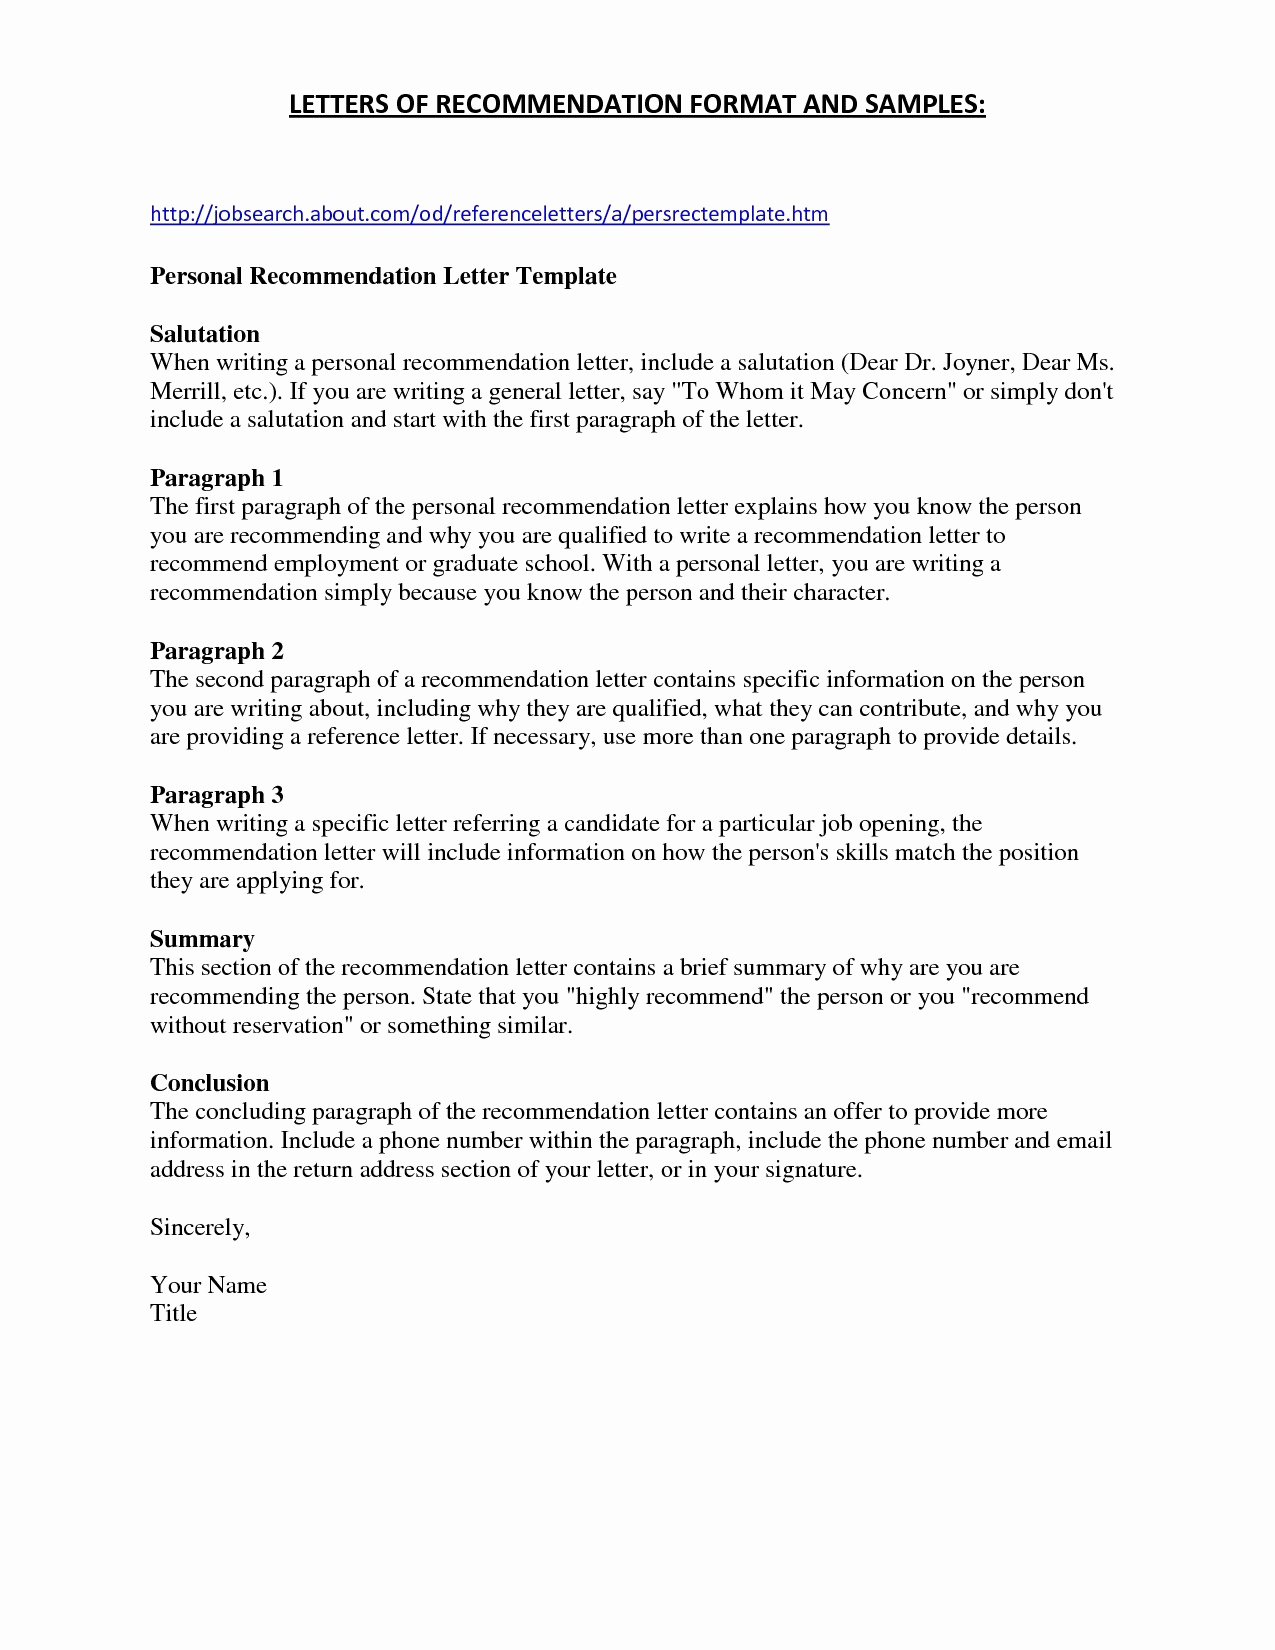 School Recommendation Letter Template Samples